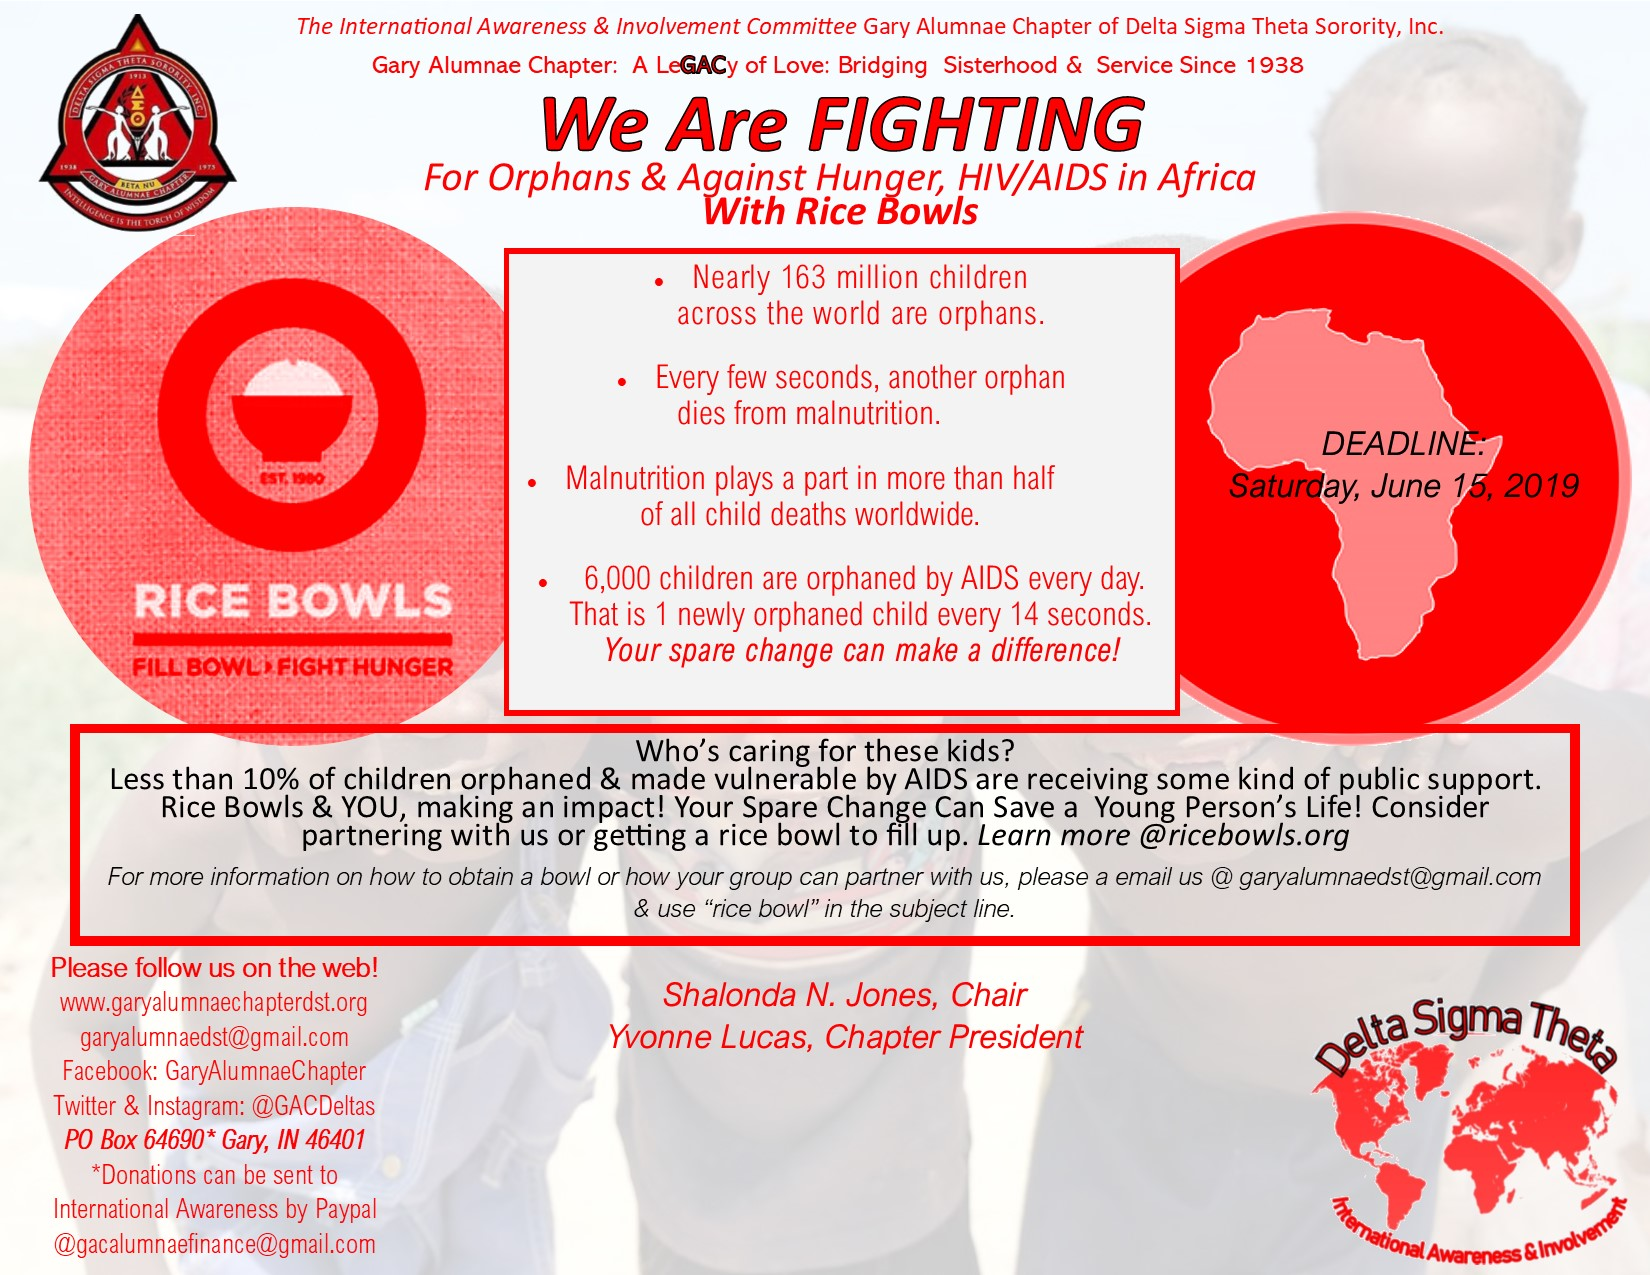 International Awareness Project for Africa